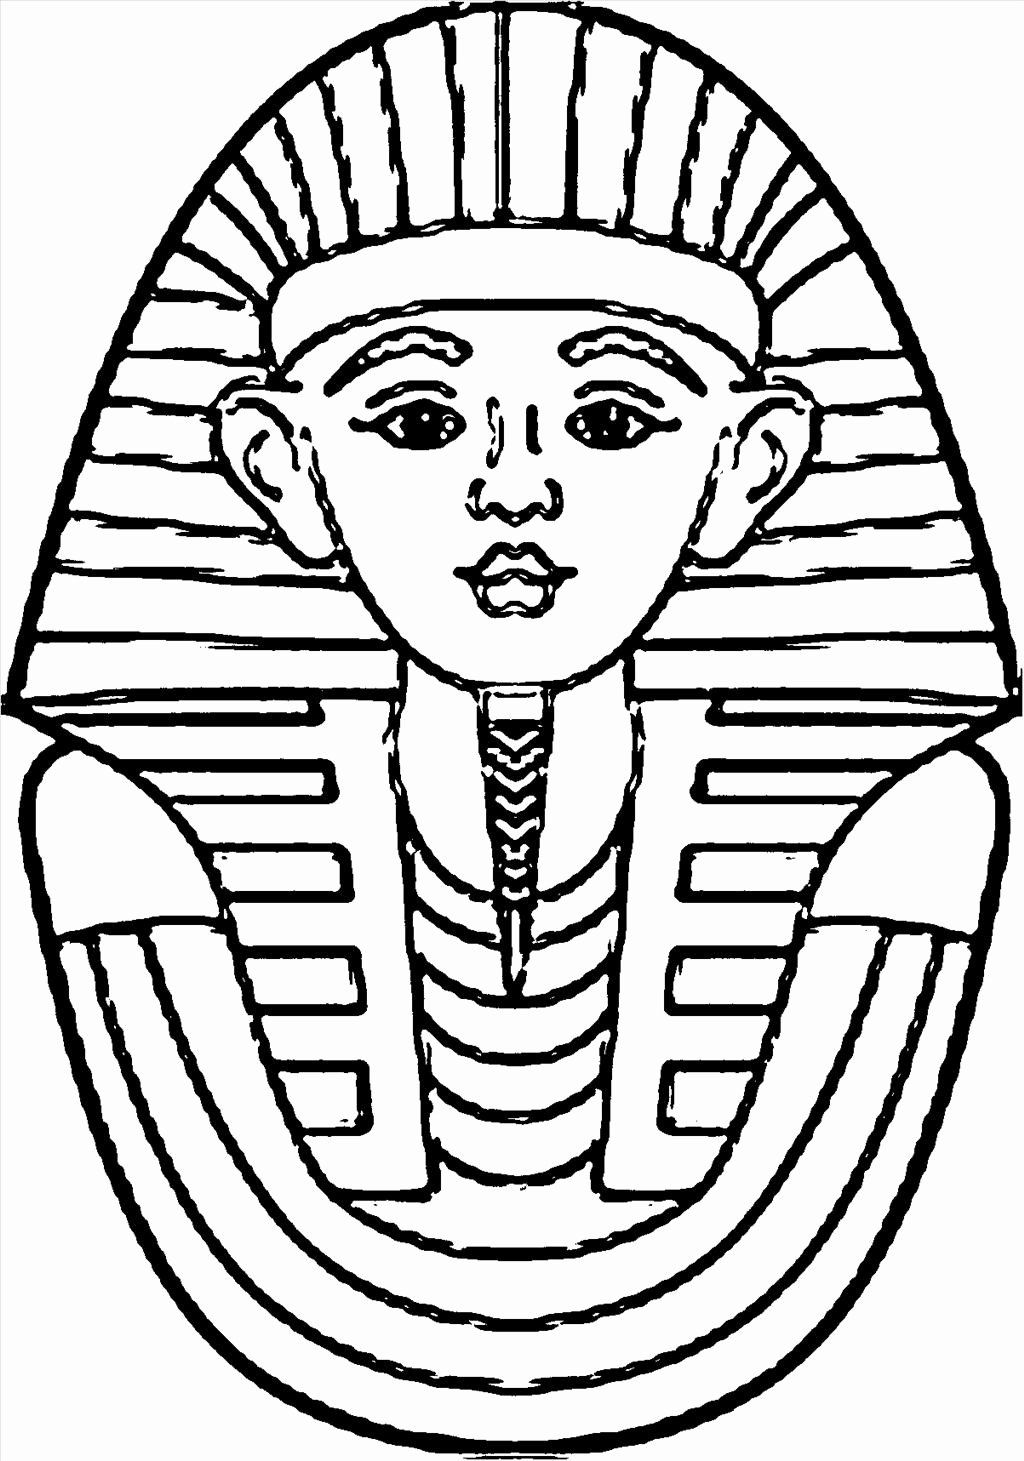 King Tut Coloring Page New King Tut Colouring Pages Sketch Coloring Page In 2020 Coloring Pages Coloring Pages Inspirational Shark Coloring Pages